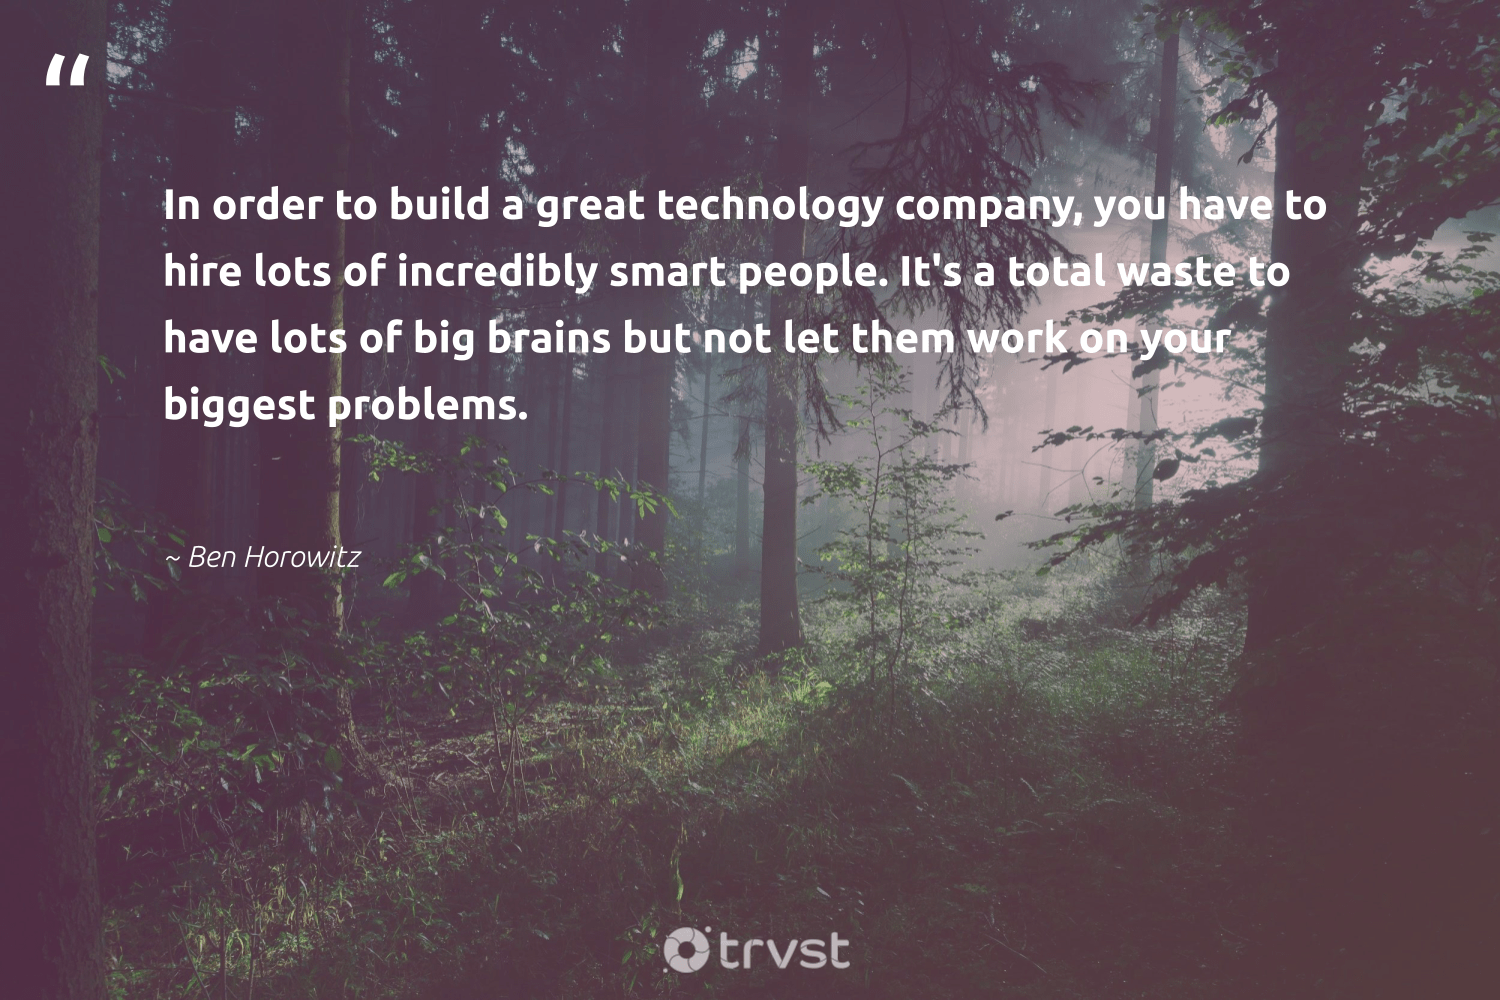 """""""In order to build a great technology company, you have to hire lots of incredibly smart people. It's a total waste to have lots of big brains but not let them work on your biggest problems.""""  - Ben Horowitz #trvst #quotes #waste #betterplanet #changetheworld #weareallone #gogreen #socialchange #collectiveaction #giveback #bethechange #dogood"""